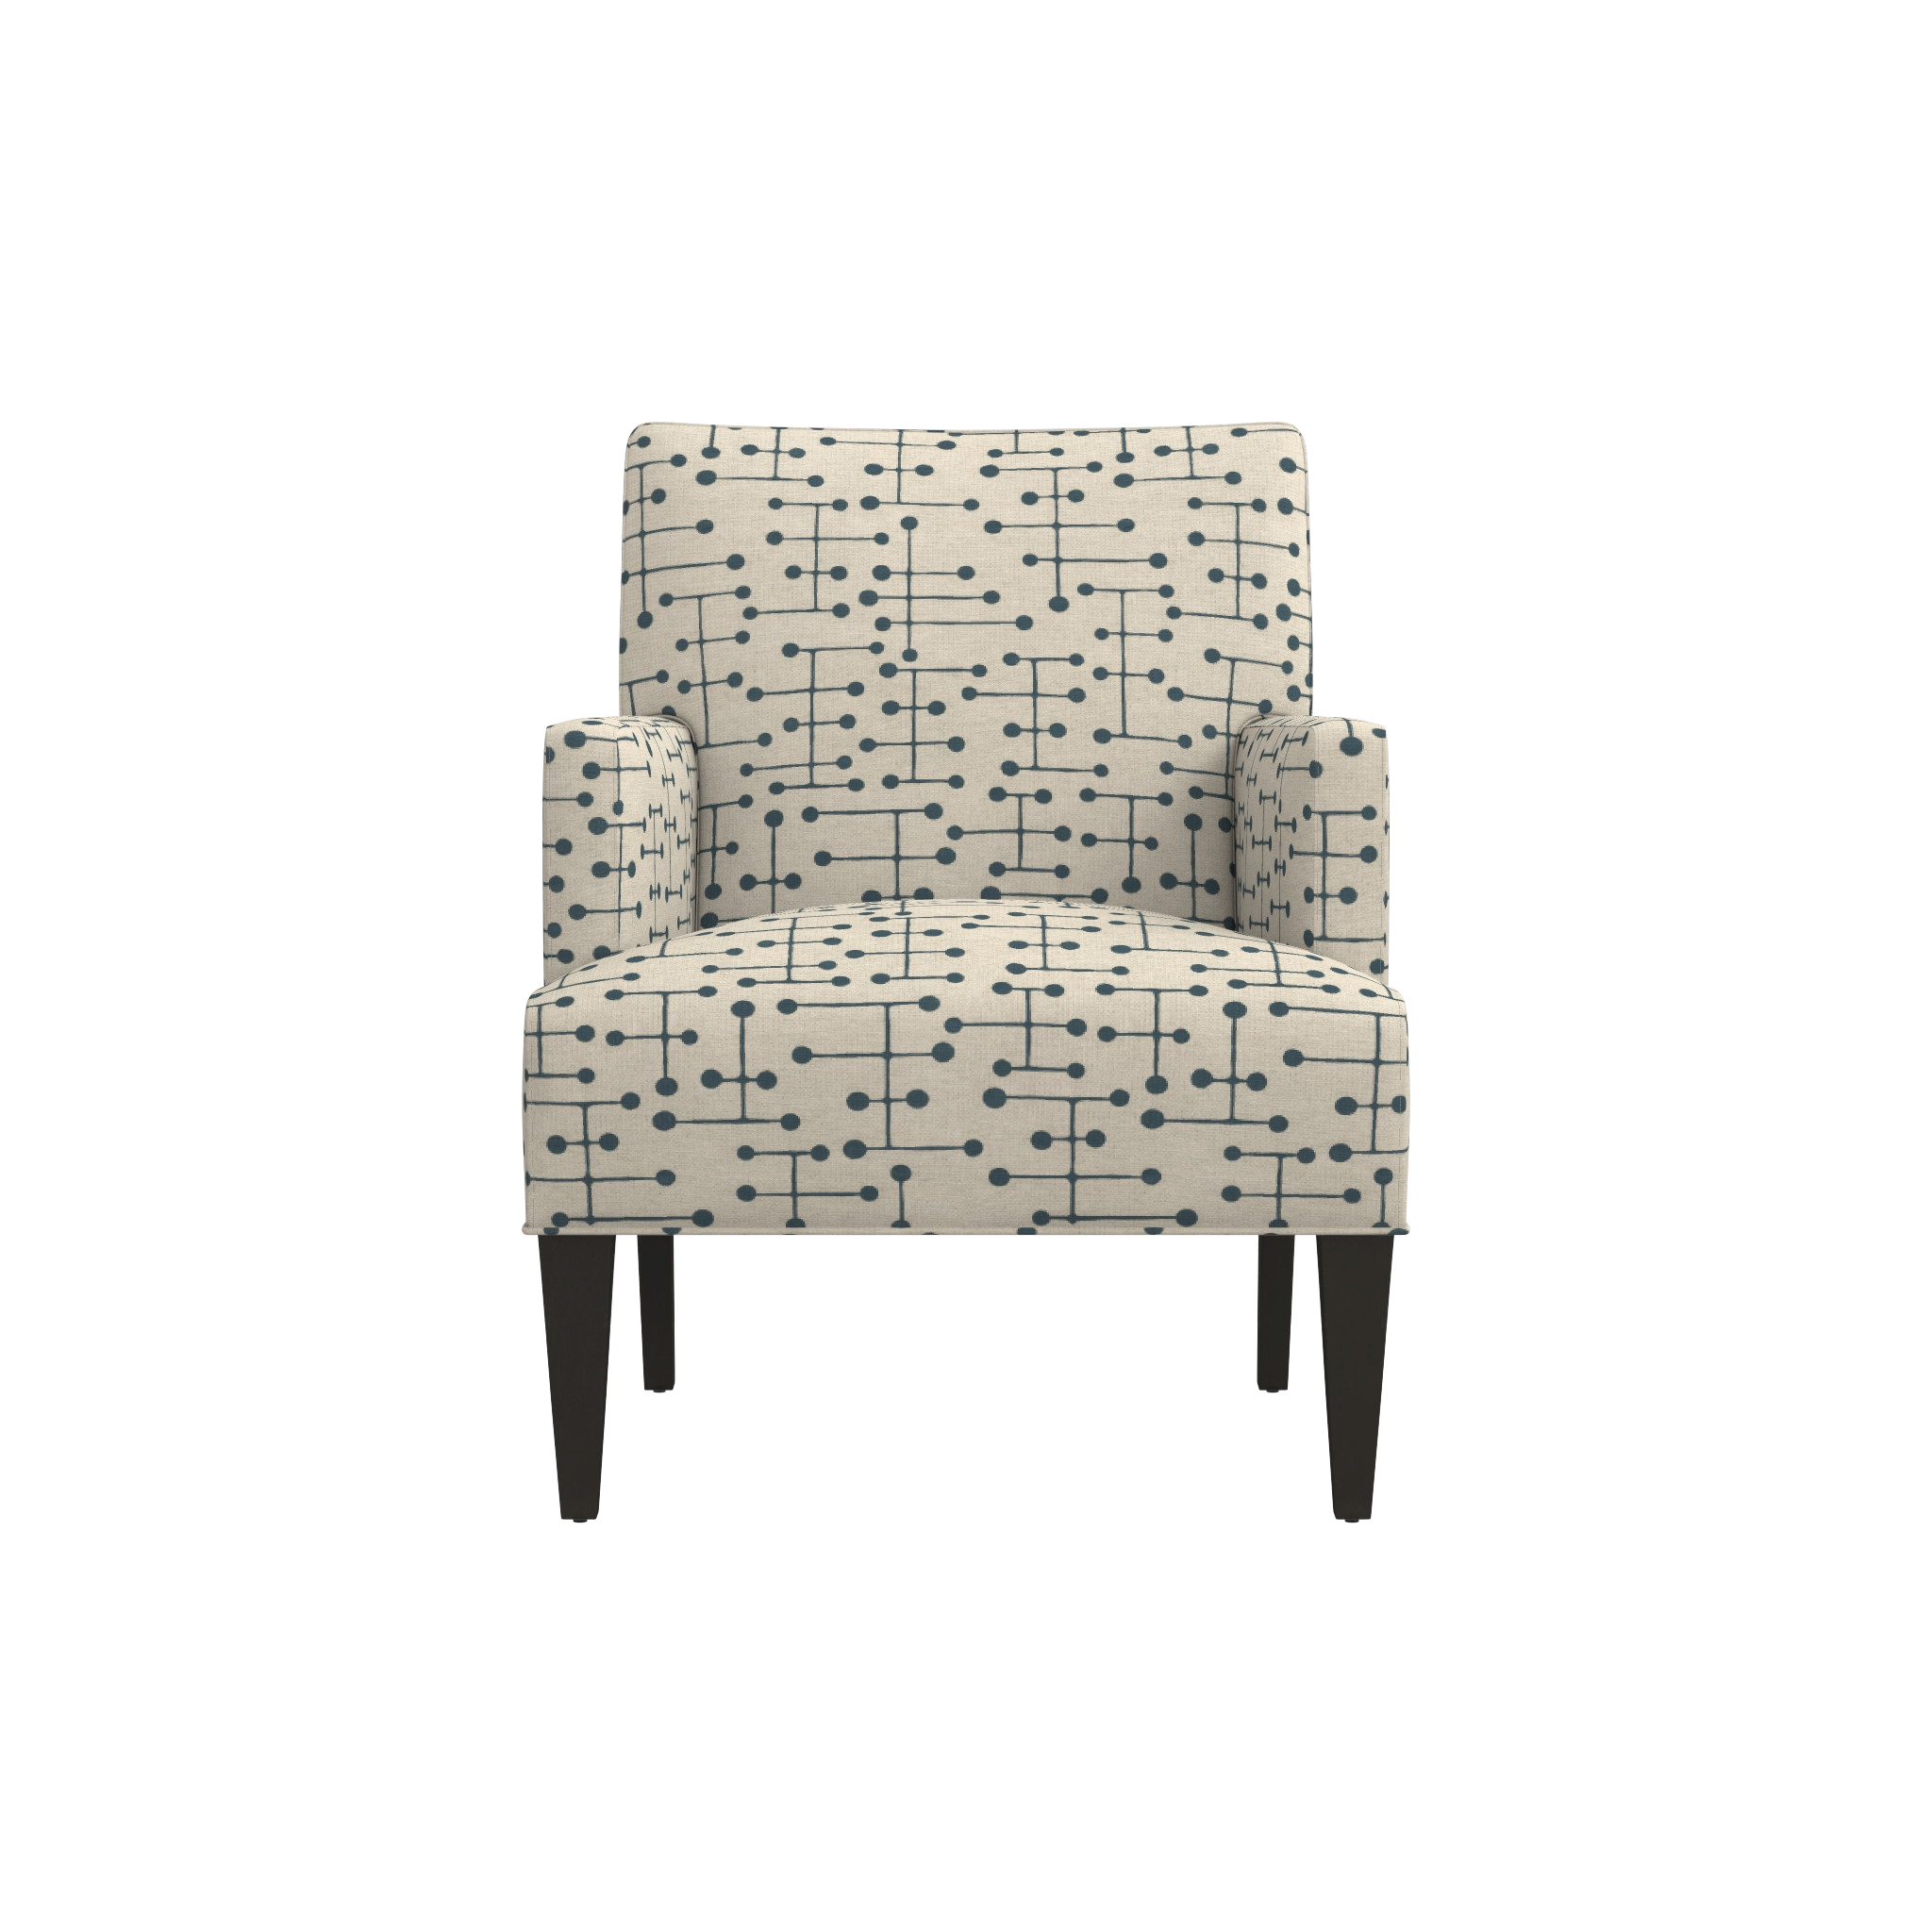 Shop Red Striped Accent Chair. | brick house | Chair, Accent ...